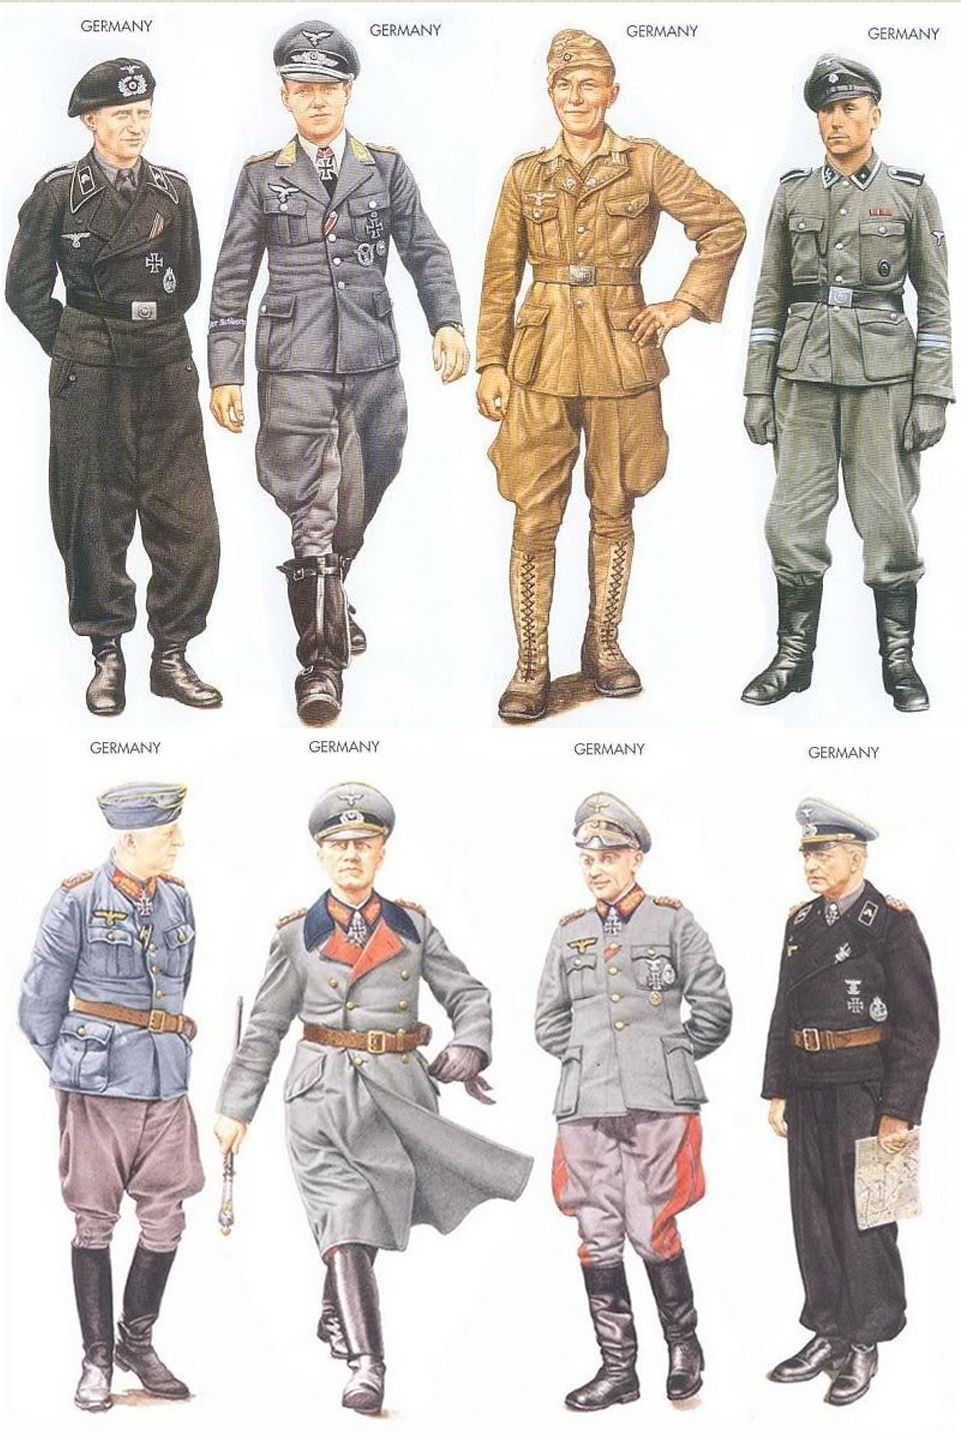 German Uniforms During World War Ii Ww2 Pinterest German Uniforms German And History